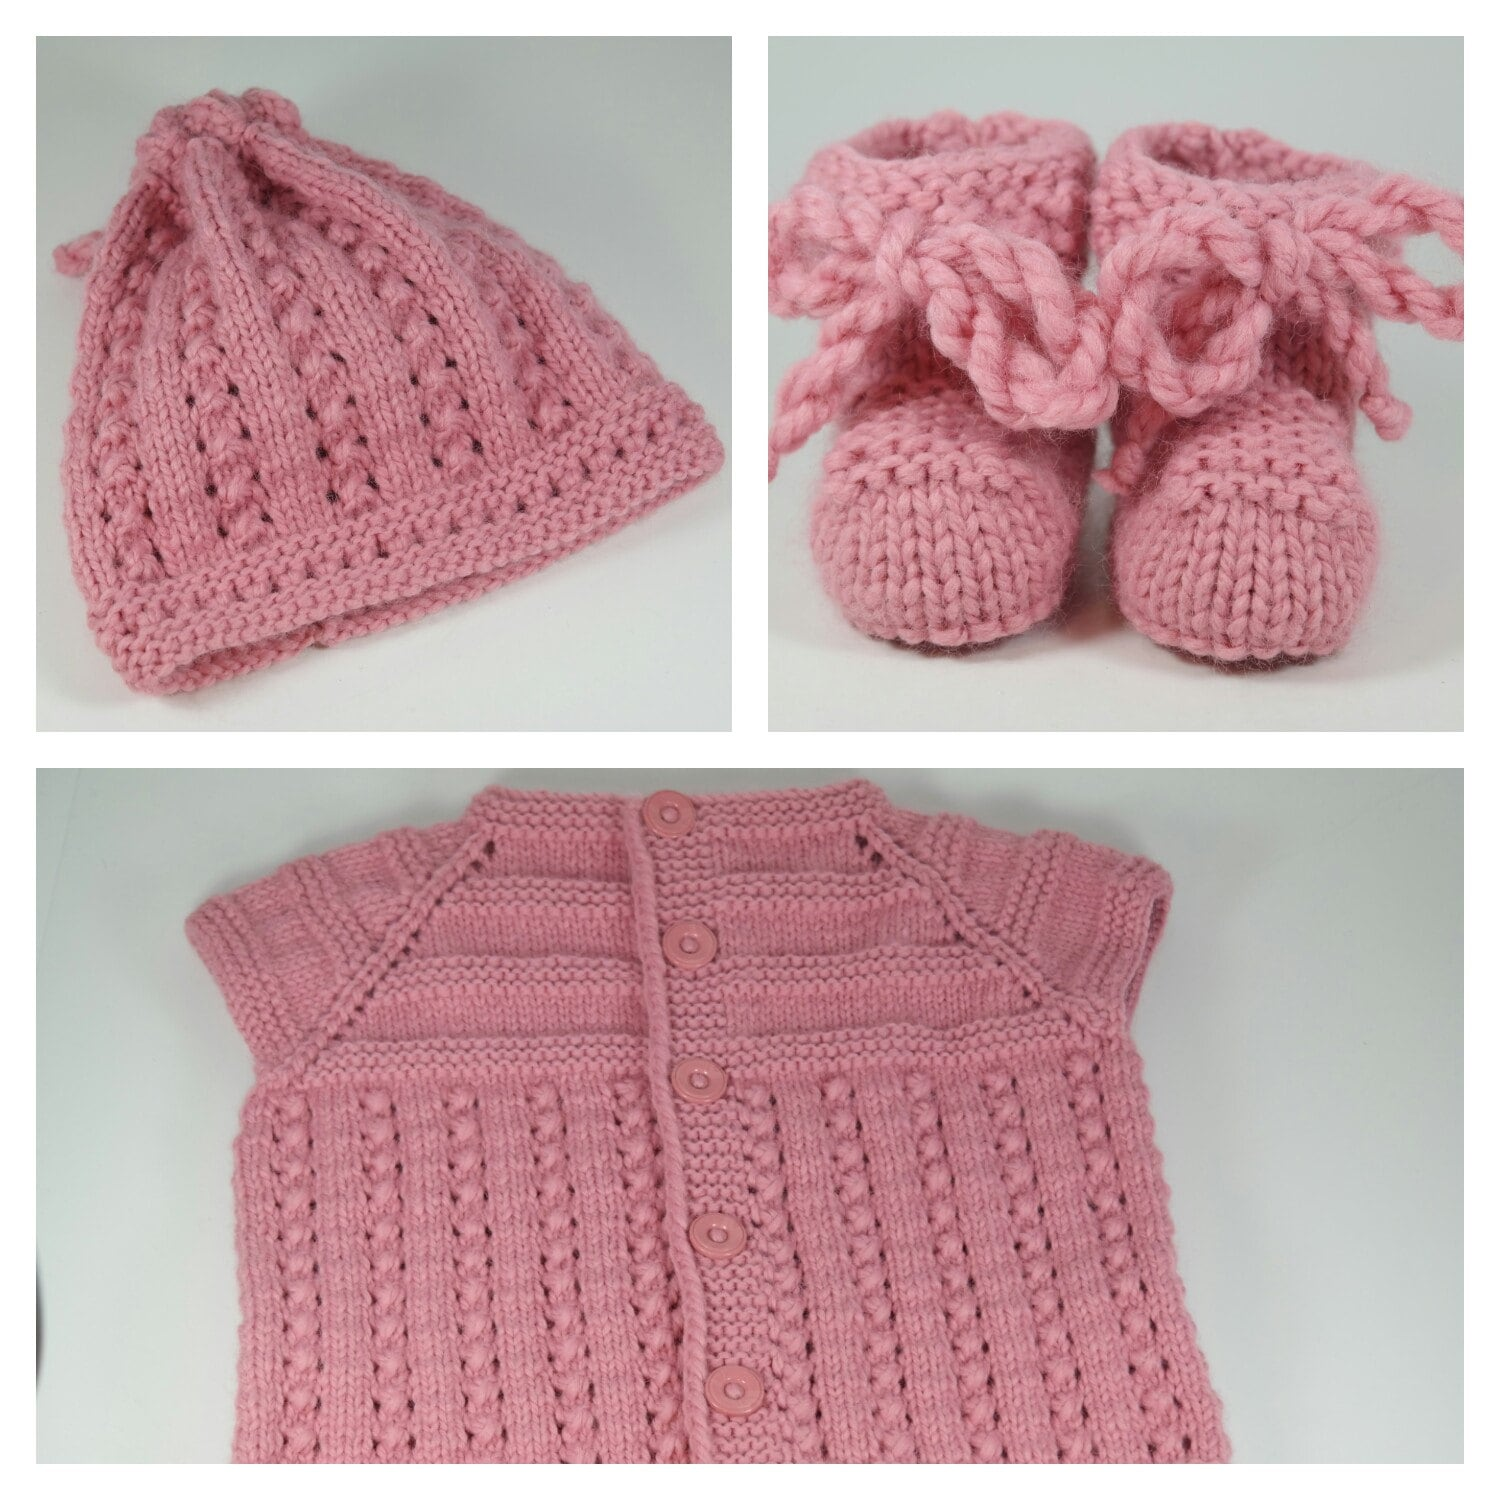 Baby knit set baby knitted hat baby knit booties by NenikoBaby